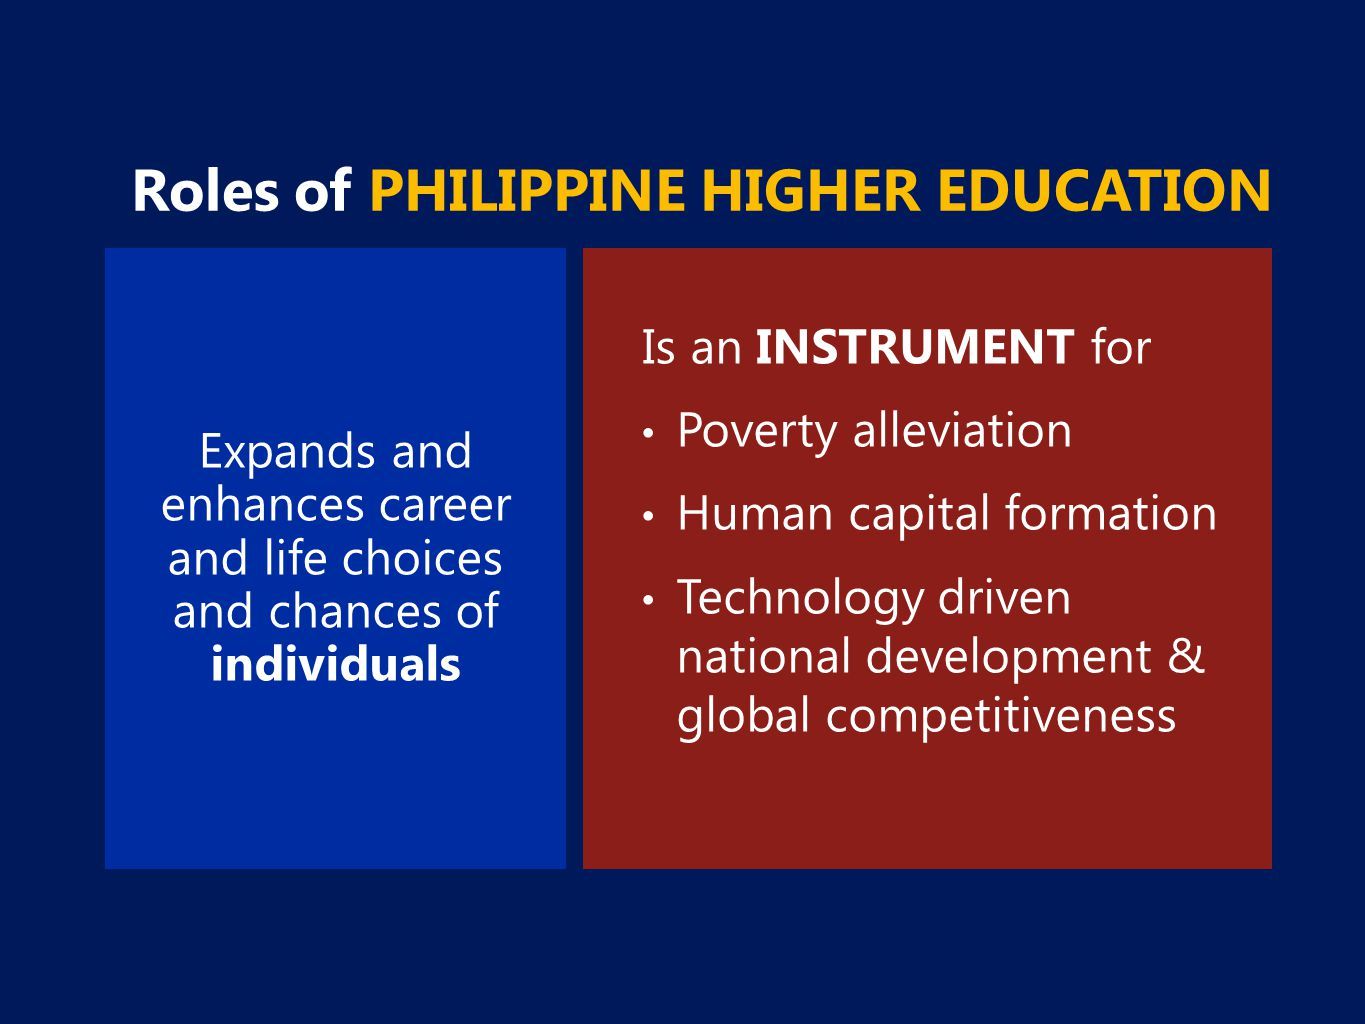 role of education in human capital formation